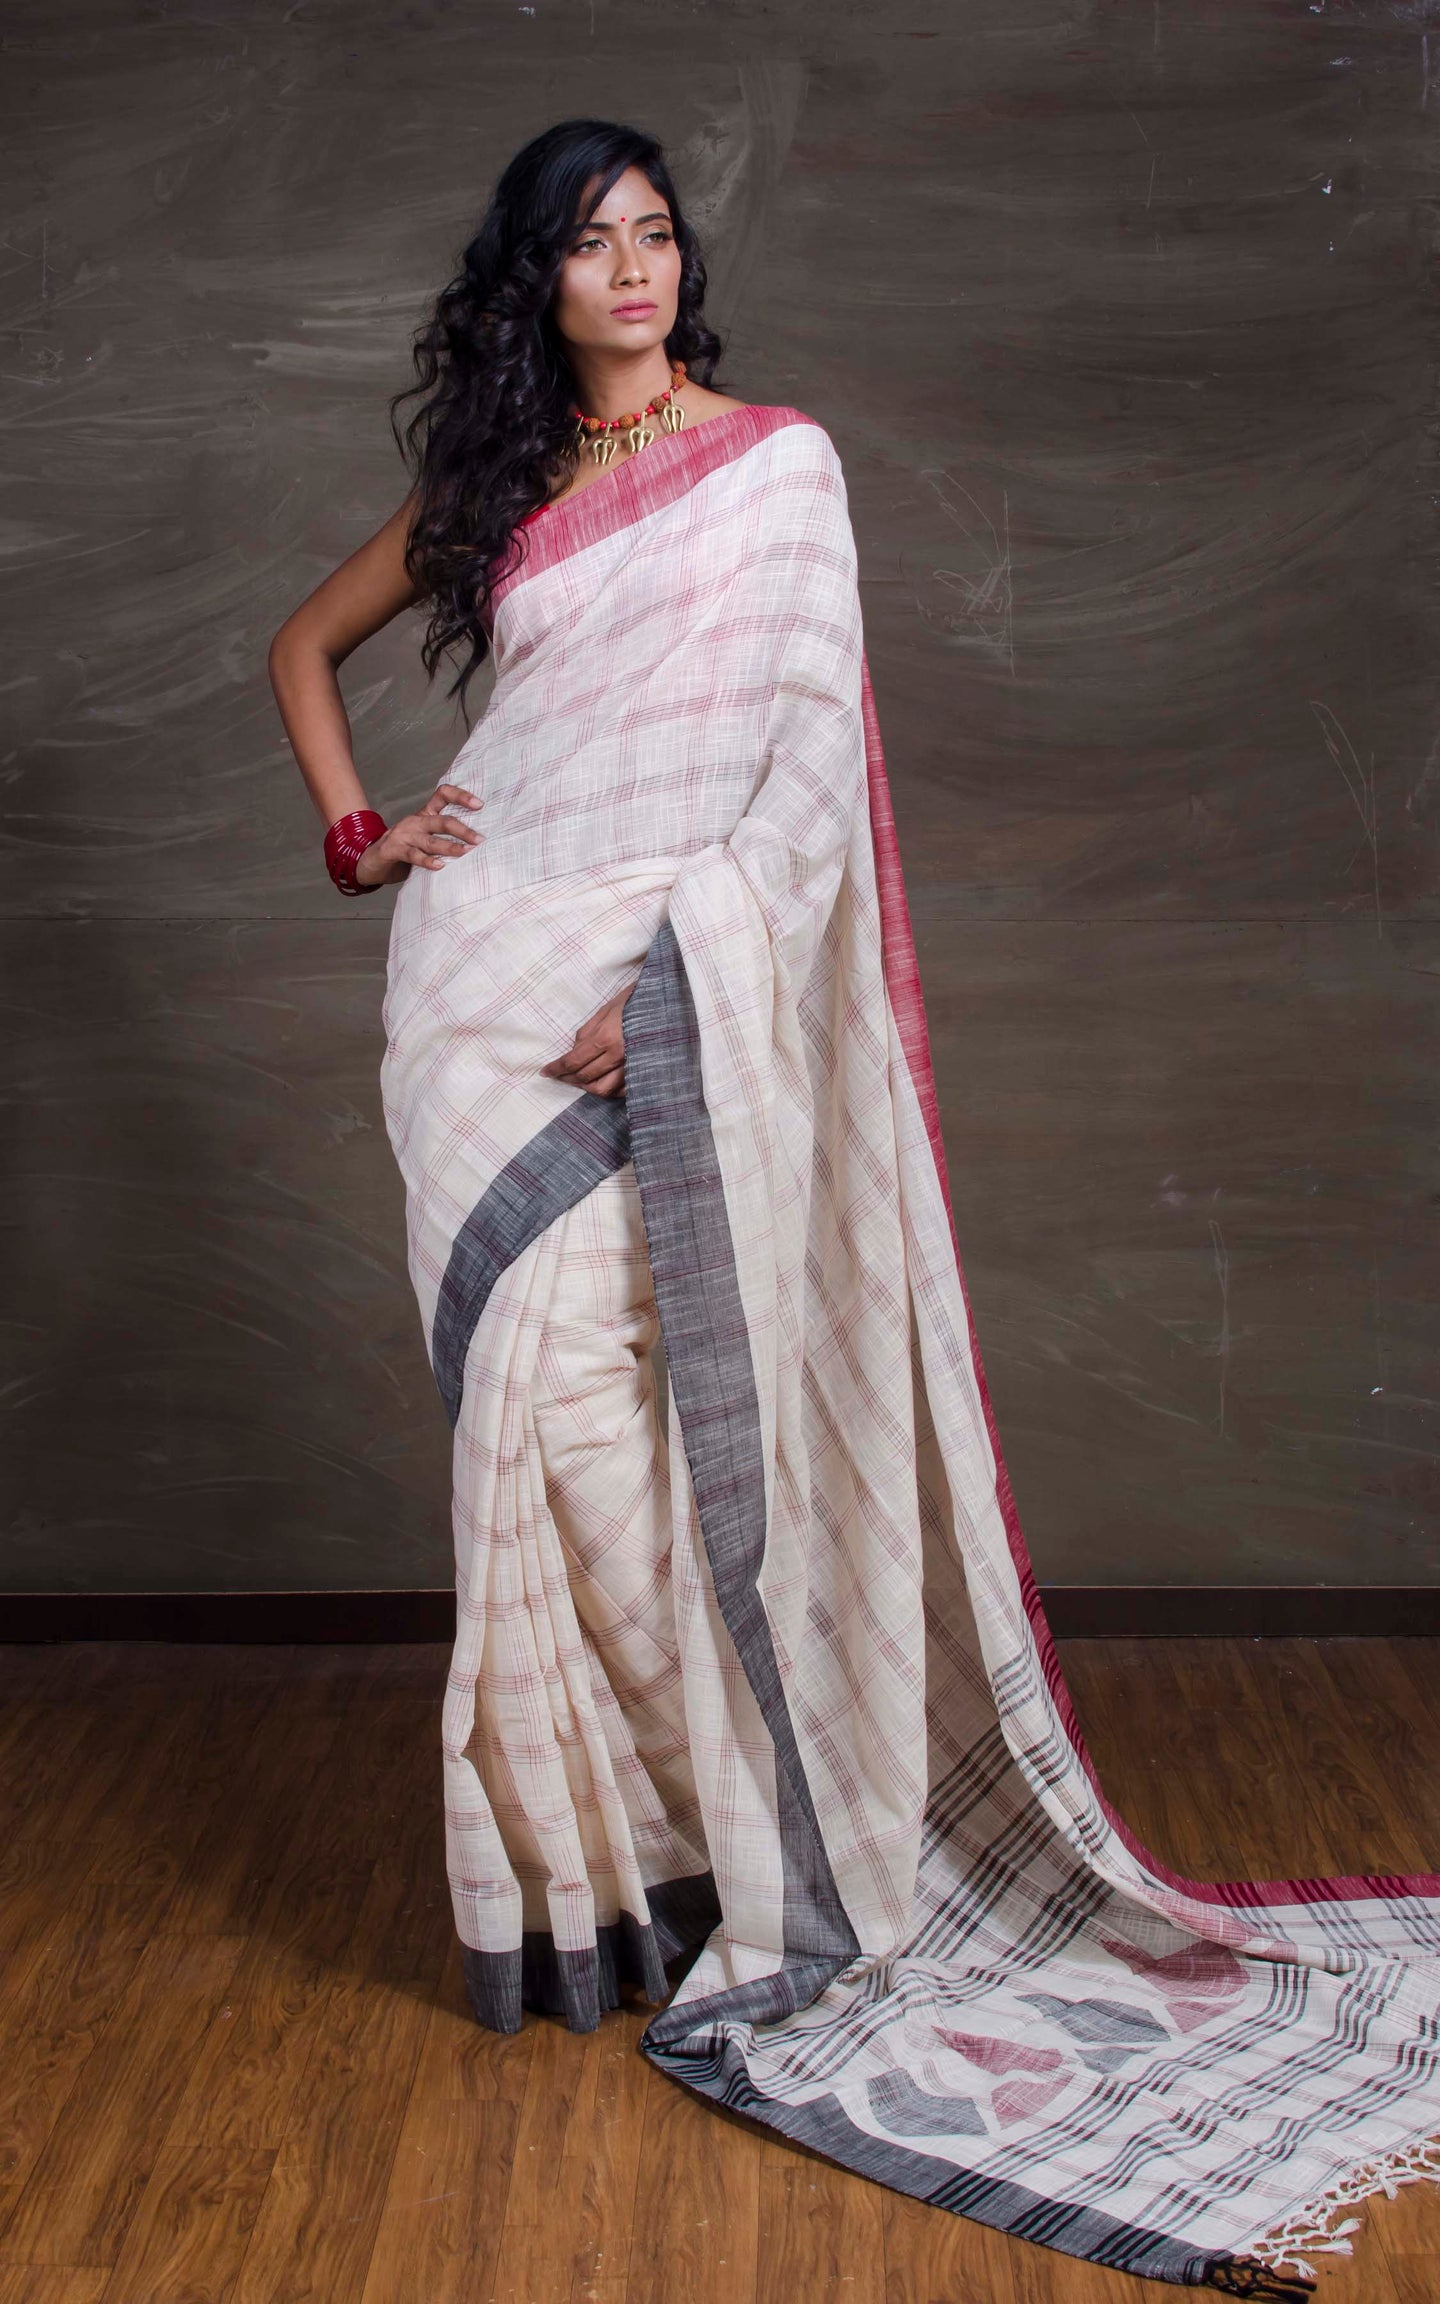 Khadi Soft Cotton Saree with Ganga Jamuna Border in Off White, Red and Black from Bengal Looms India